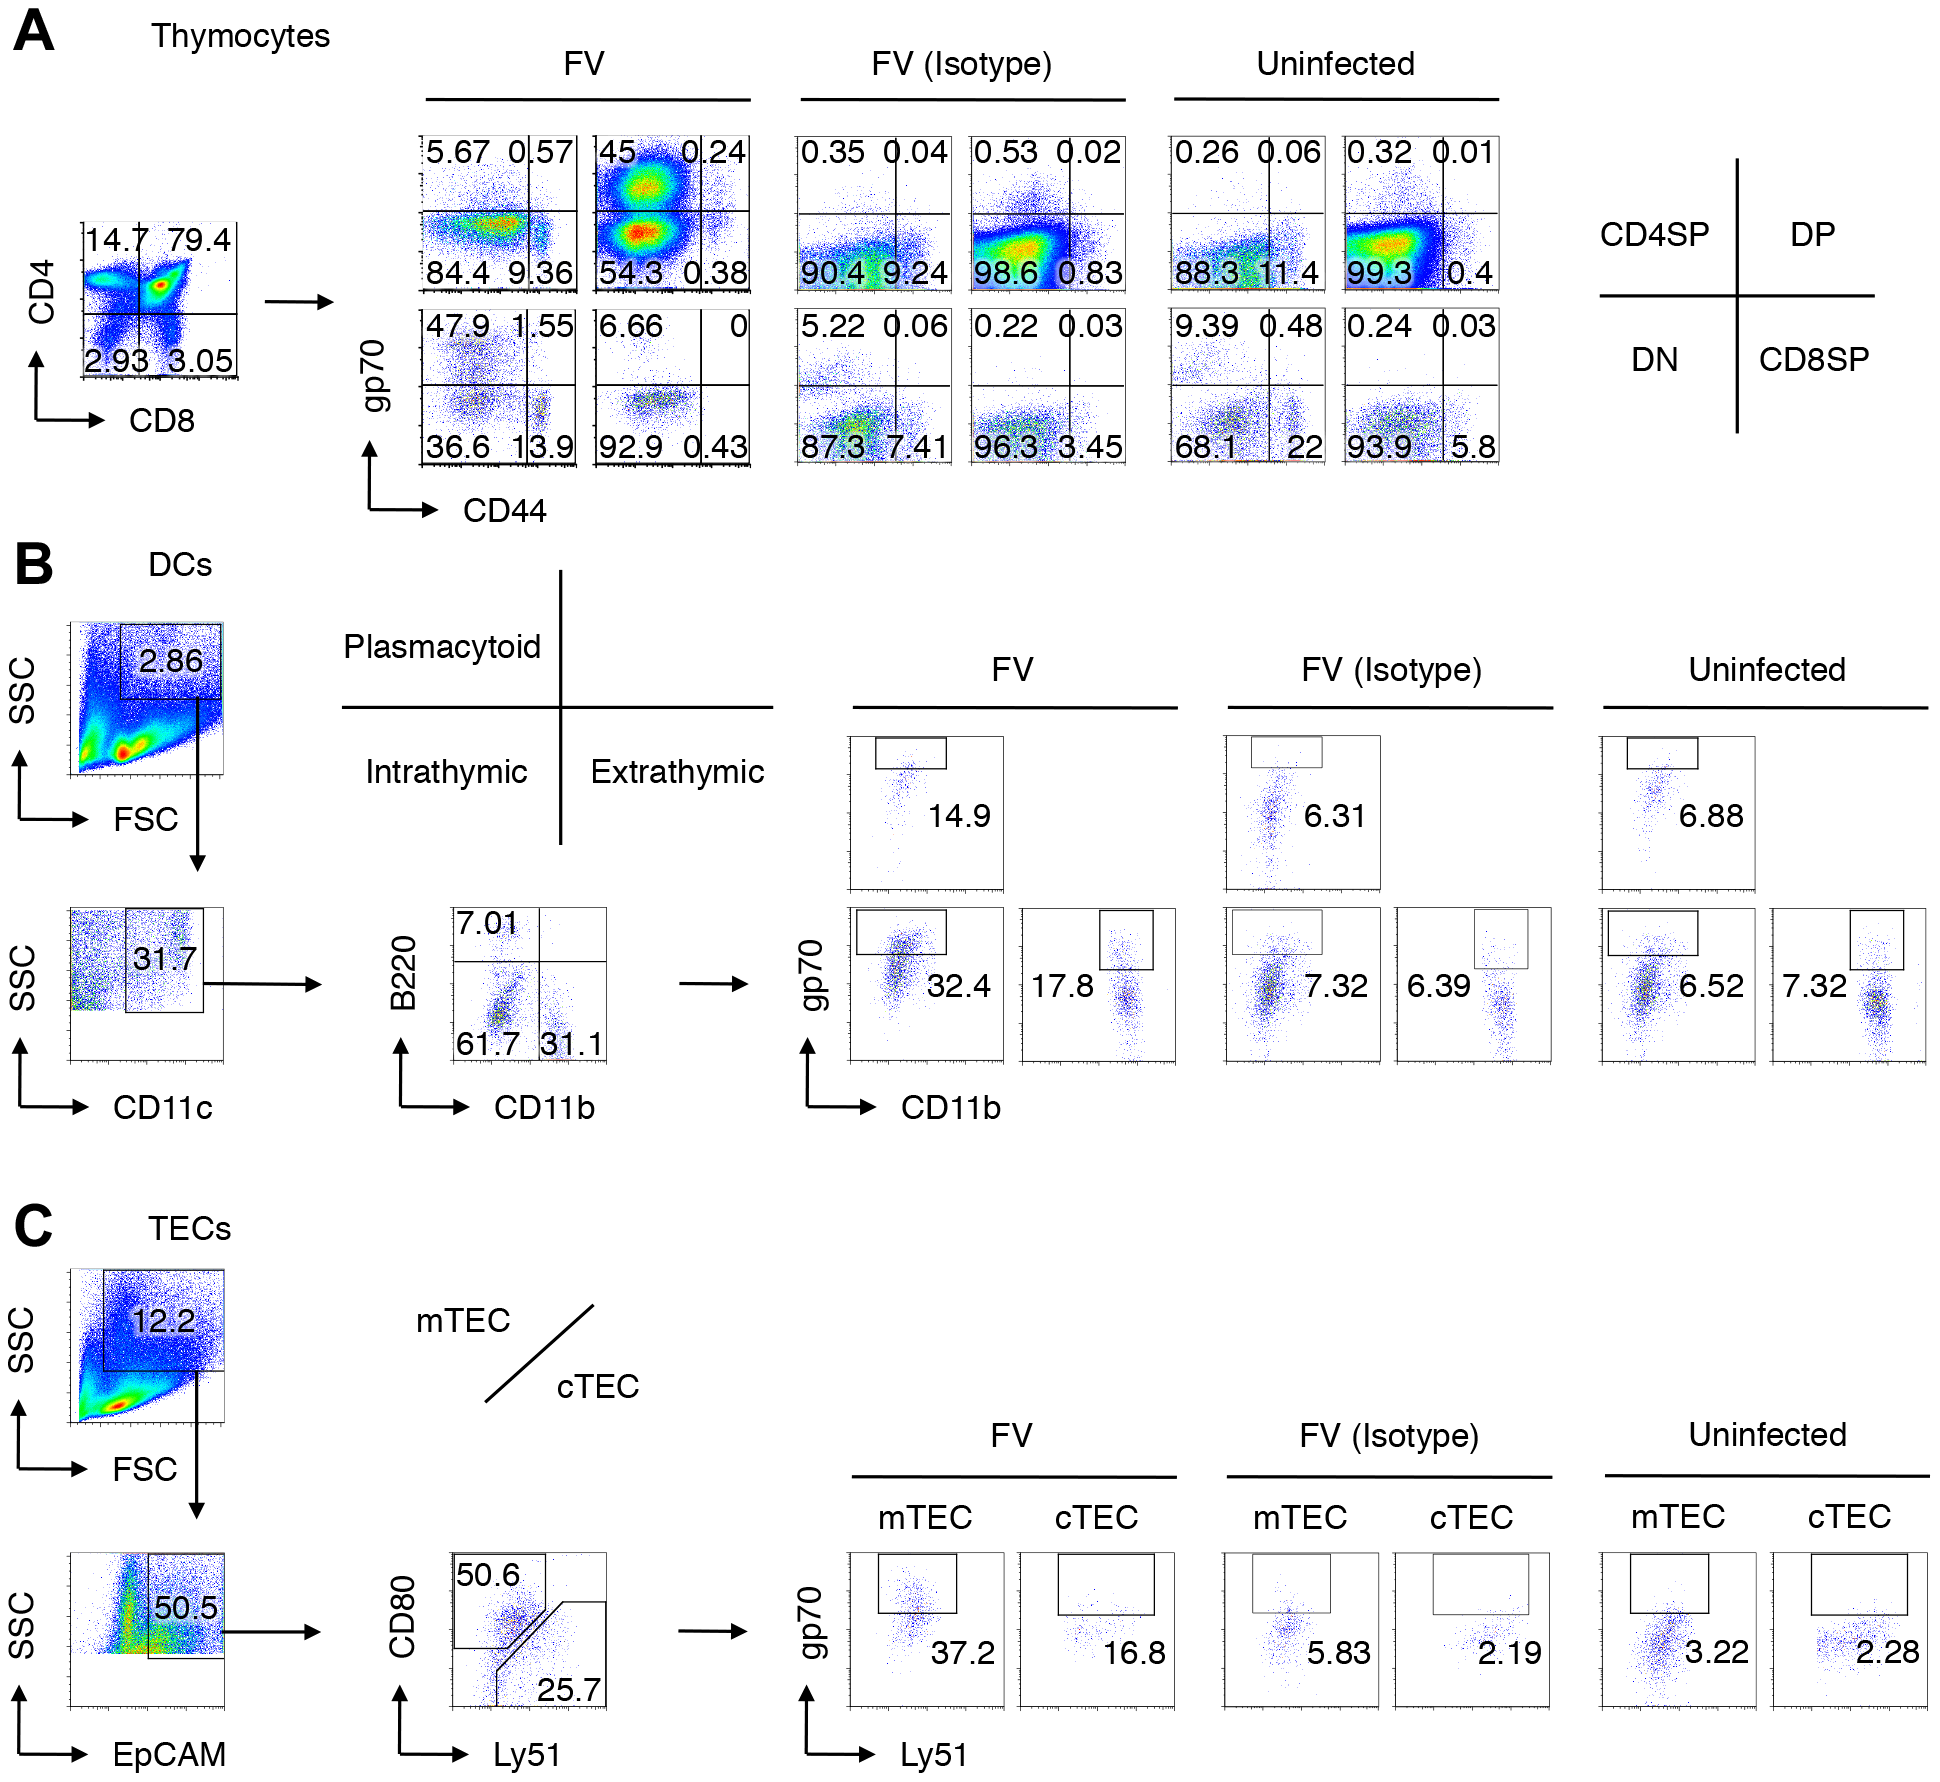 Viral antigen expression in each cell population in the thymus after FV infection.